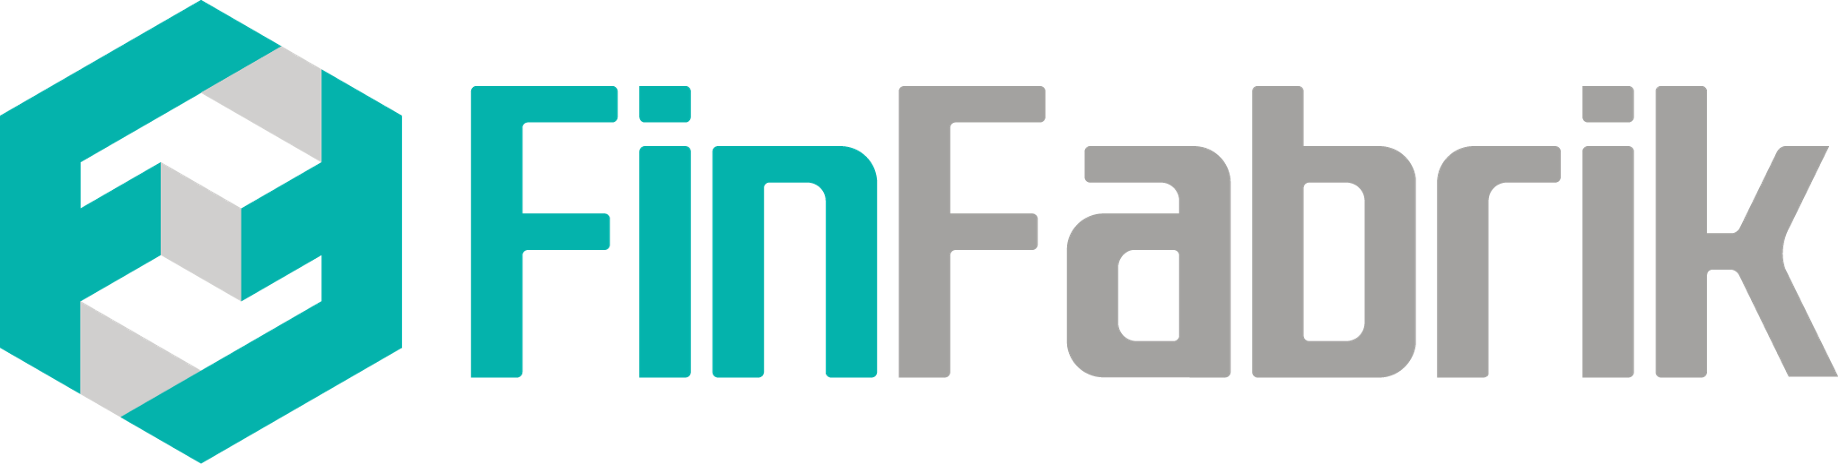 FinFabrik Announces Seed Round Led by BitMEX Ventures